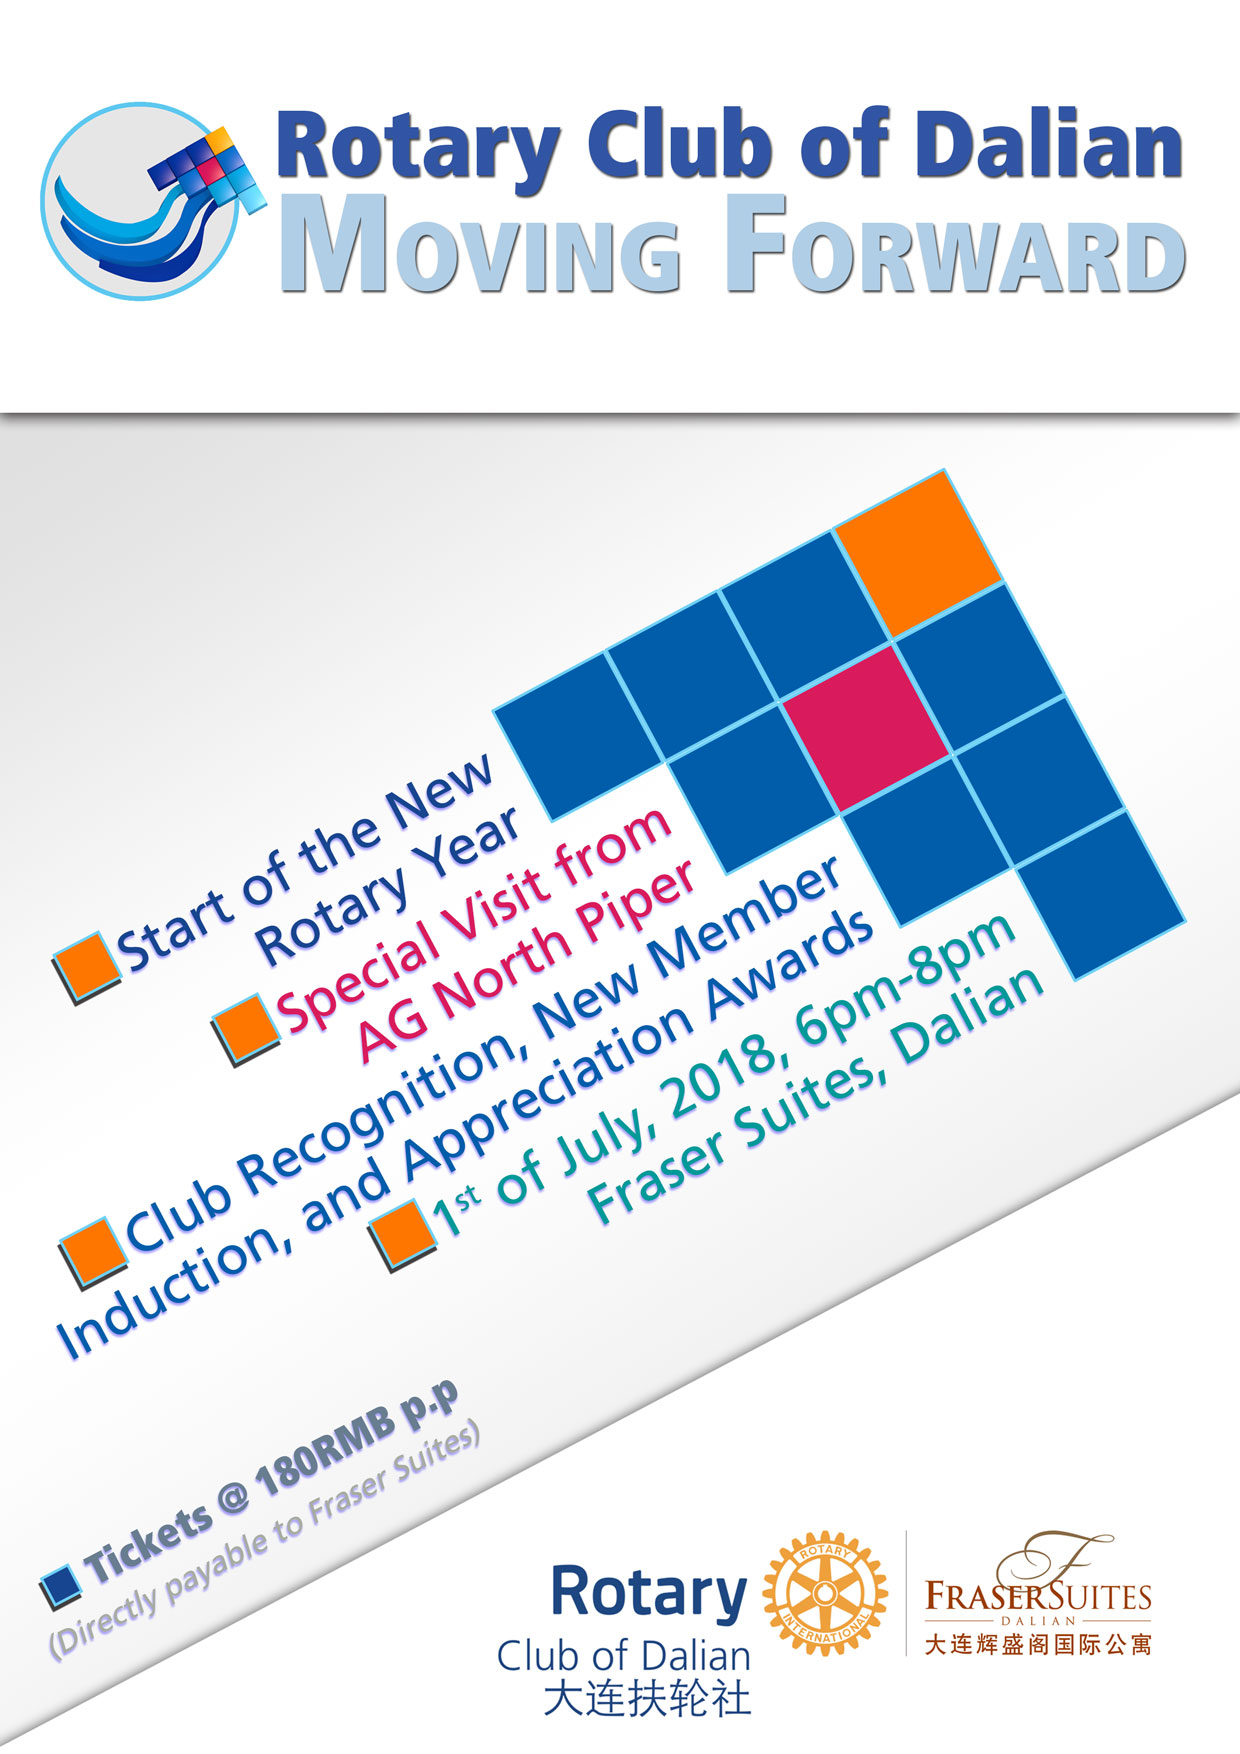 1st-of-July-Moving-Forward-Poster.jpg